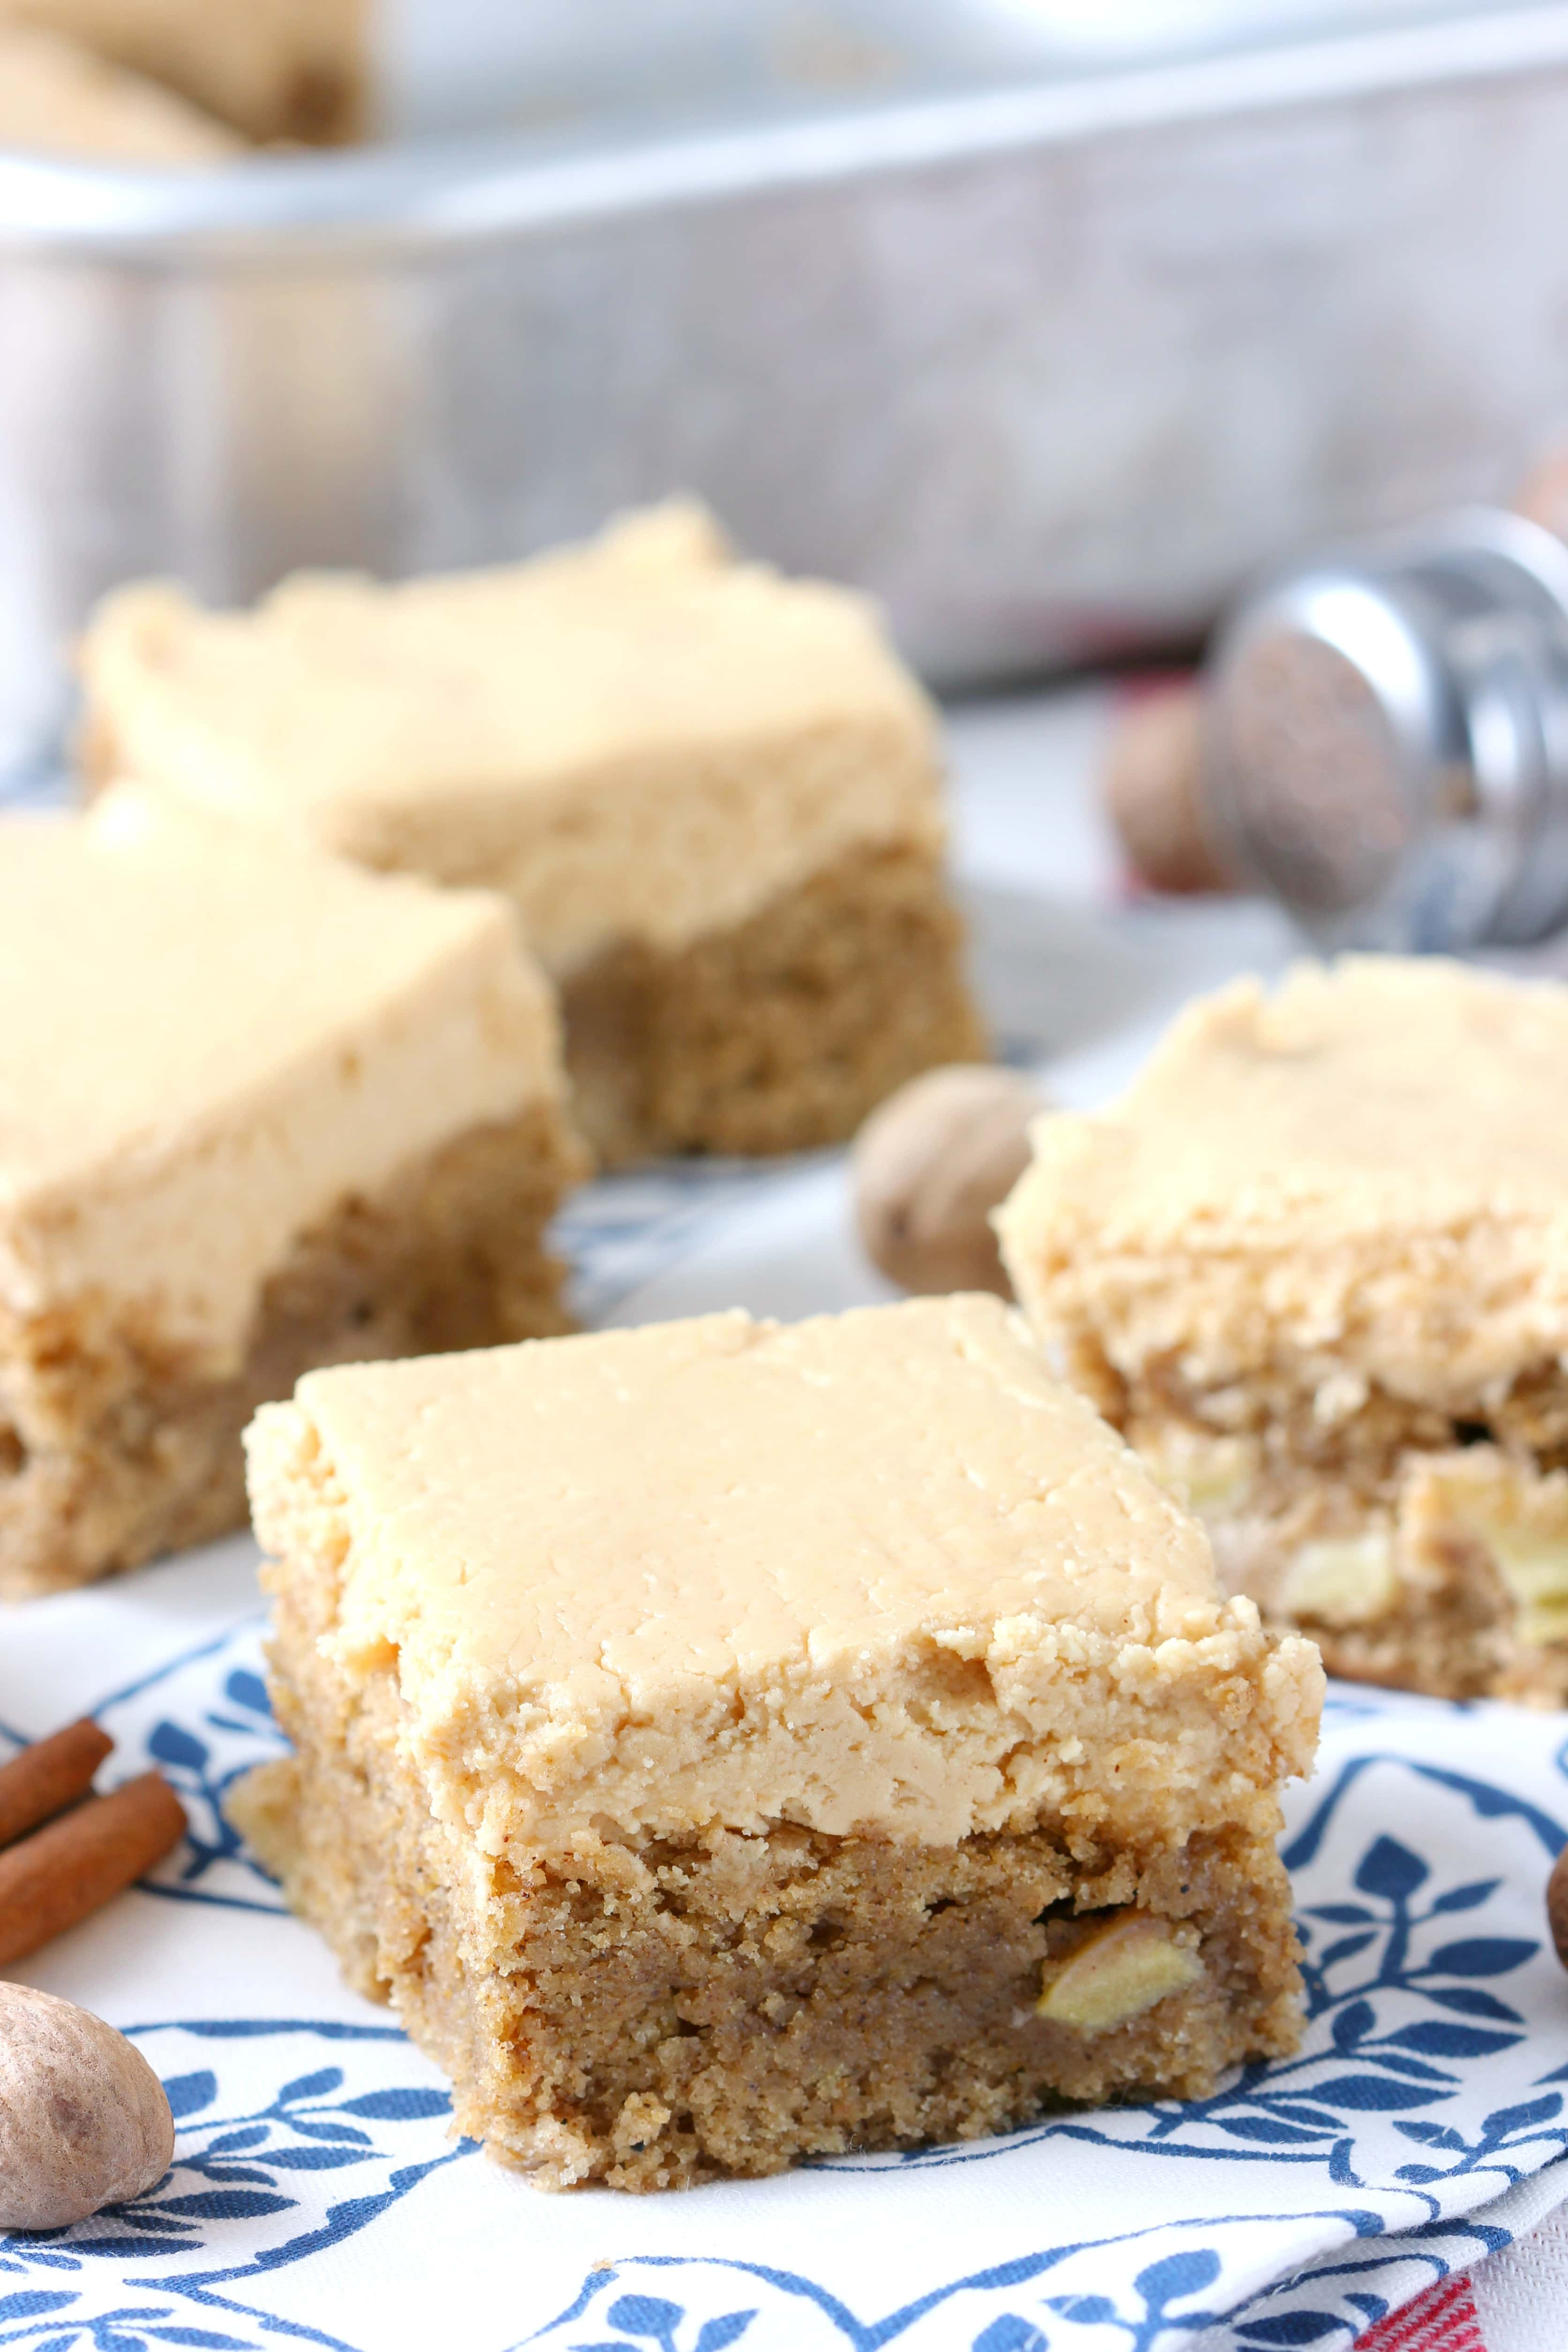 Spiced Apple Bars with Peanut Butter Buttercream Recipe from A Kitchen Addiction